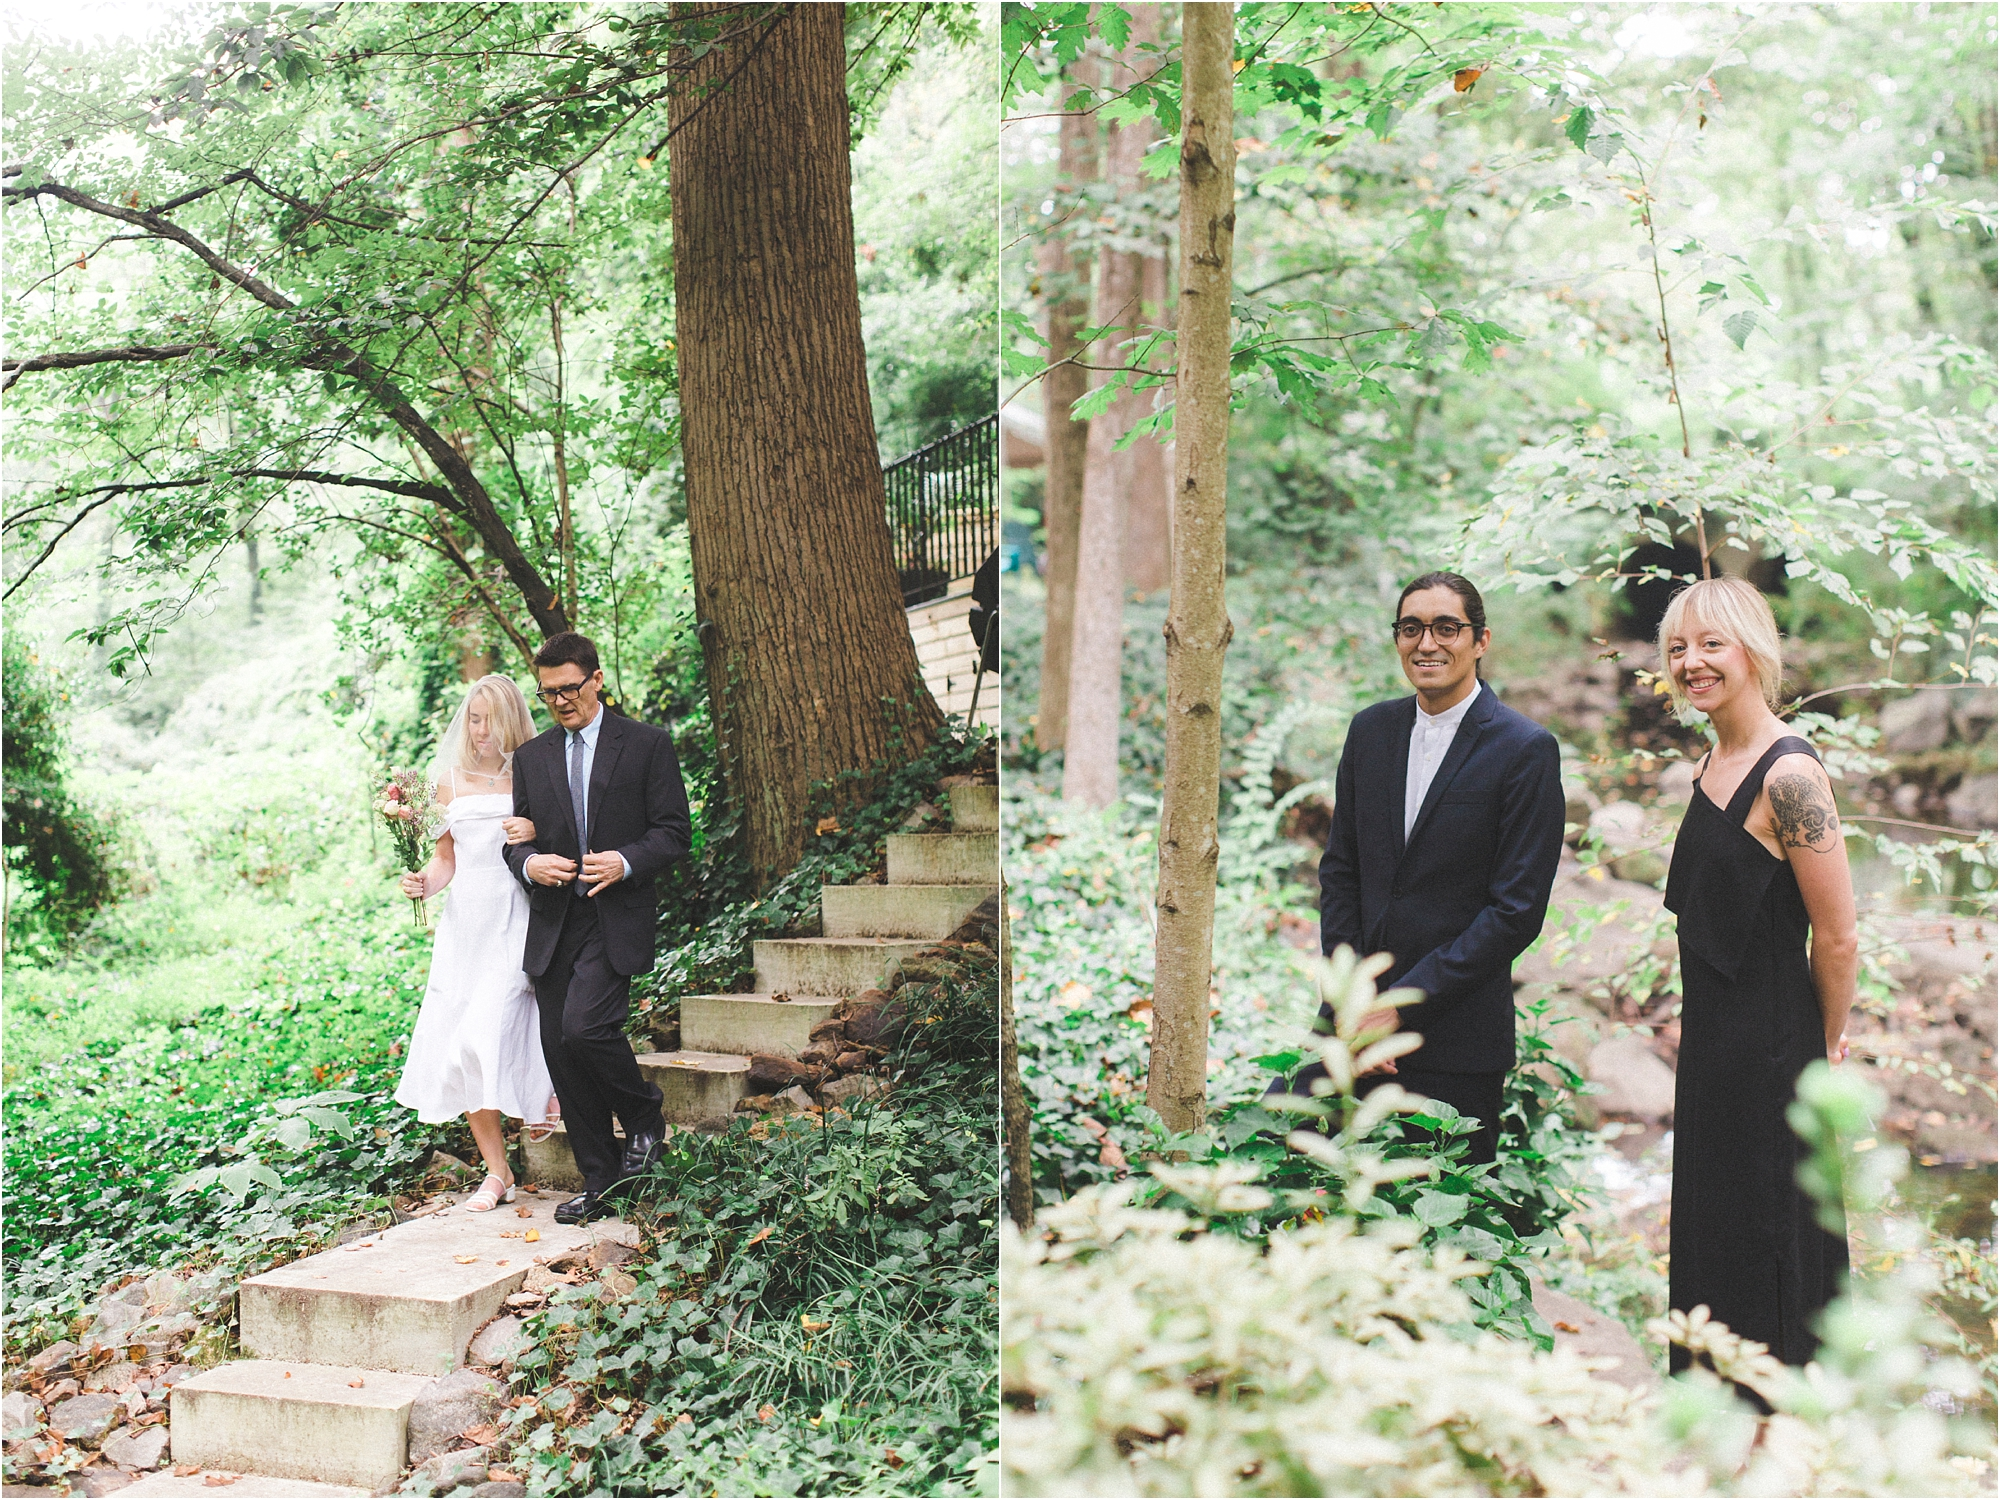 intimate-wooded-backyard-richmond-virginia-wedding-photo_0001aa.JPG